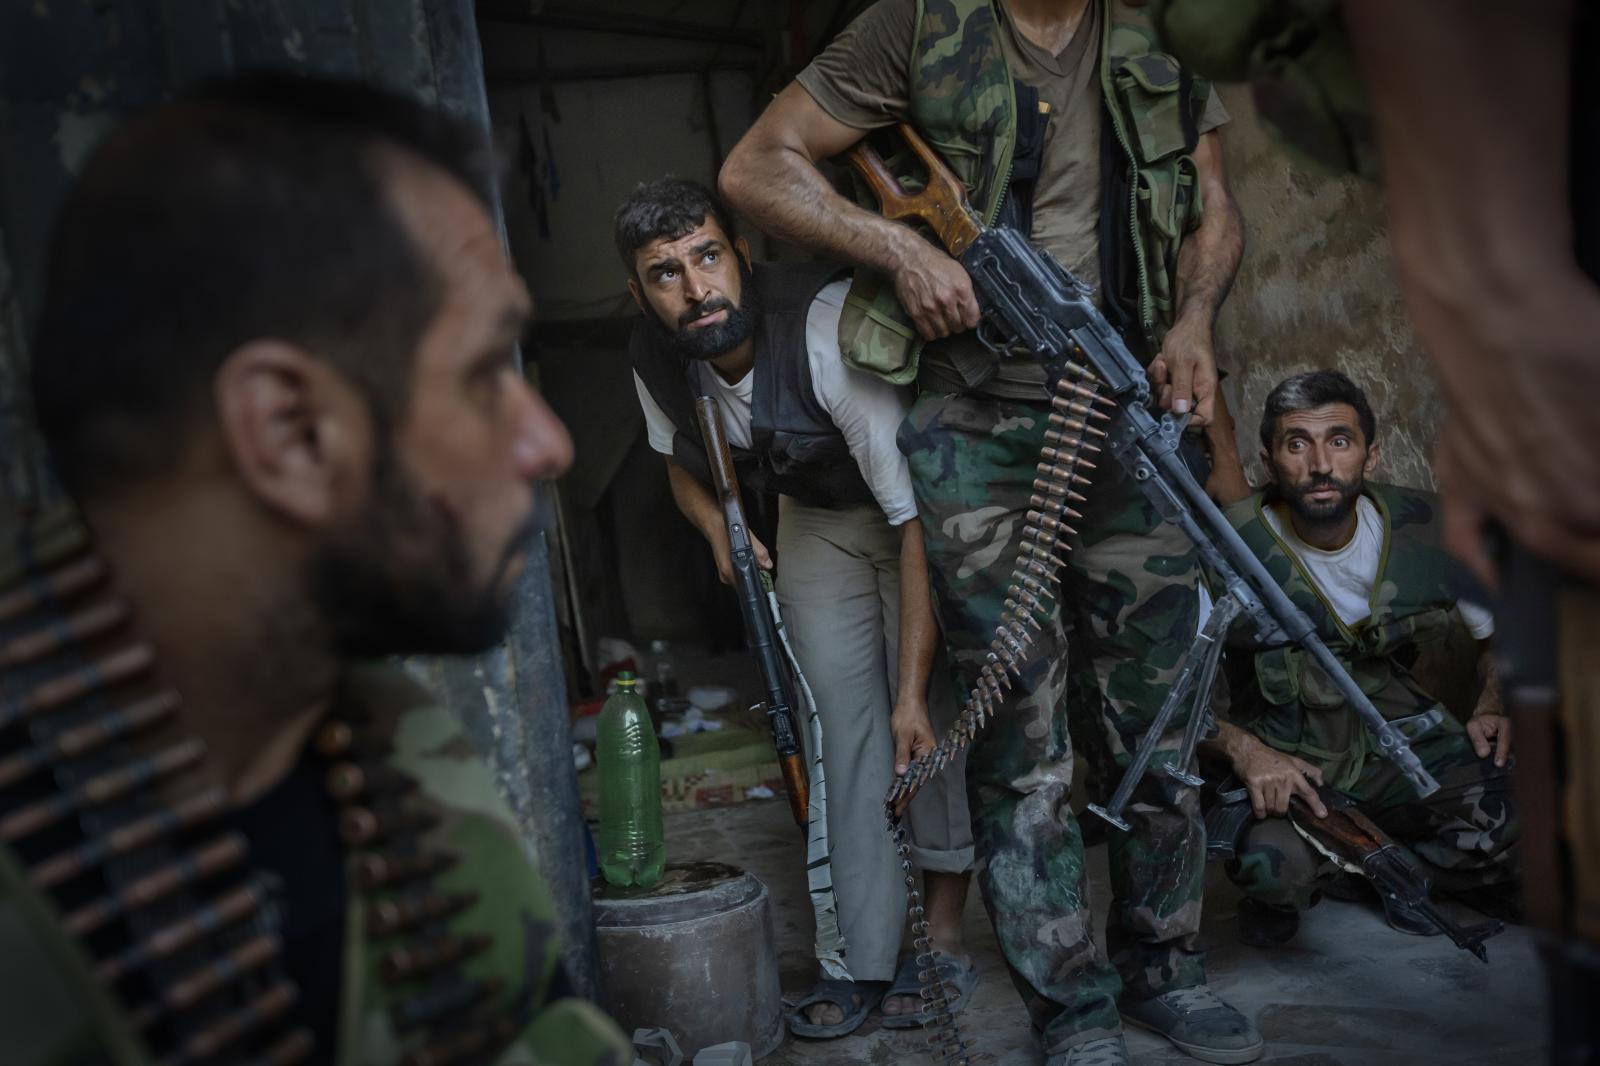 Free Syrian Army (FSA) soldiers during intense fighting against Assad's troops over the taking of the police station in the Old City of Aleppo. As a helicopter bombs the area, a soldier looks s up ( Syria , 2012 )